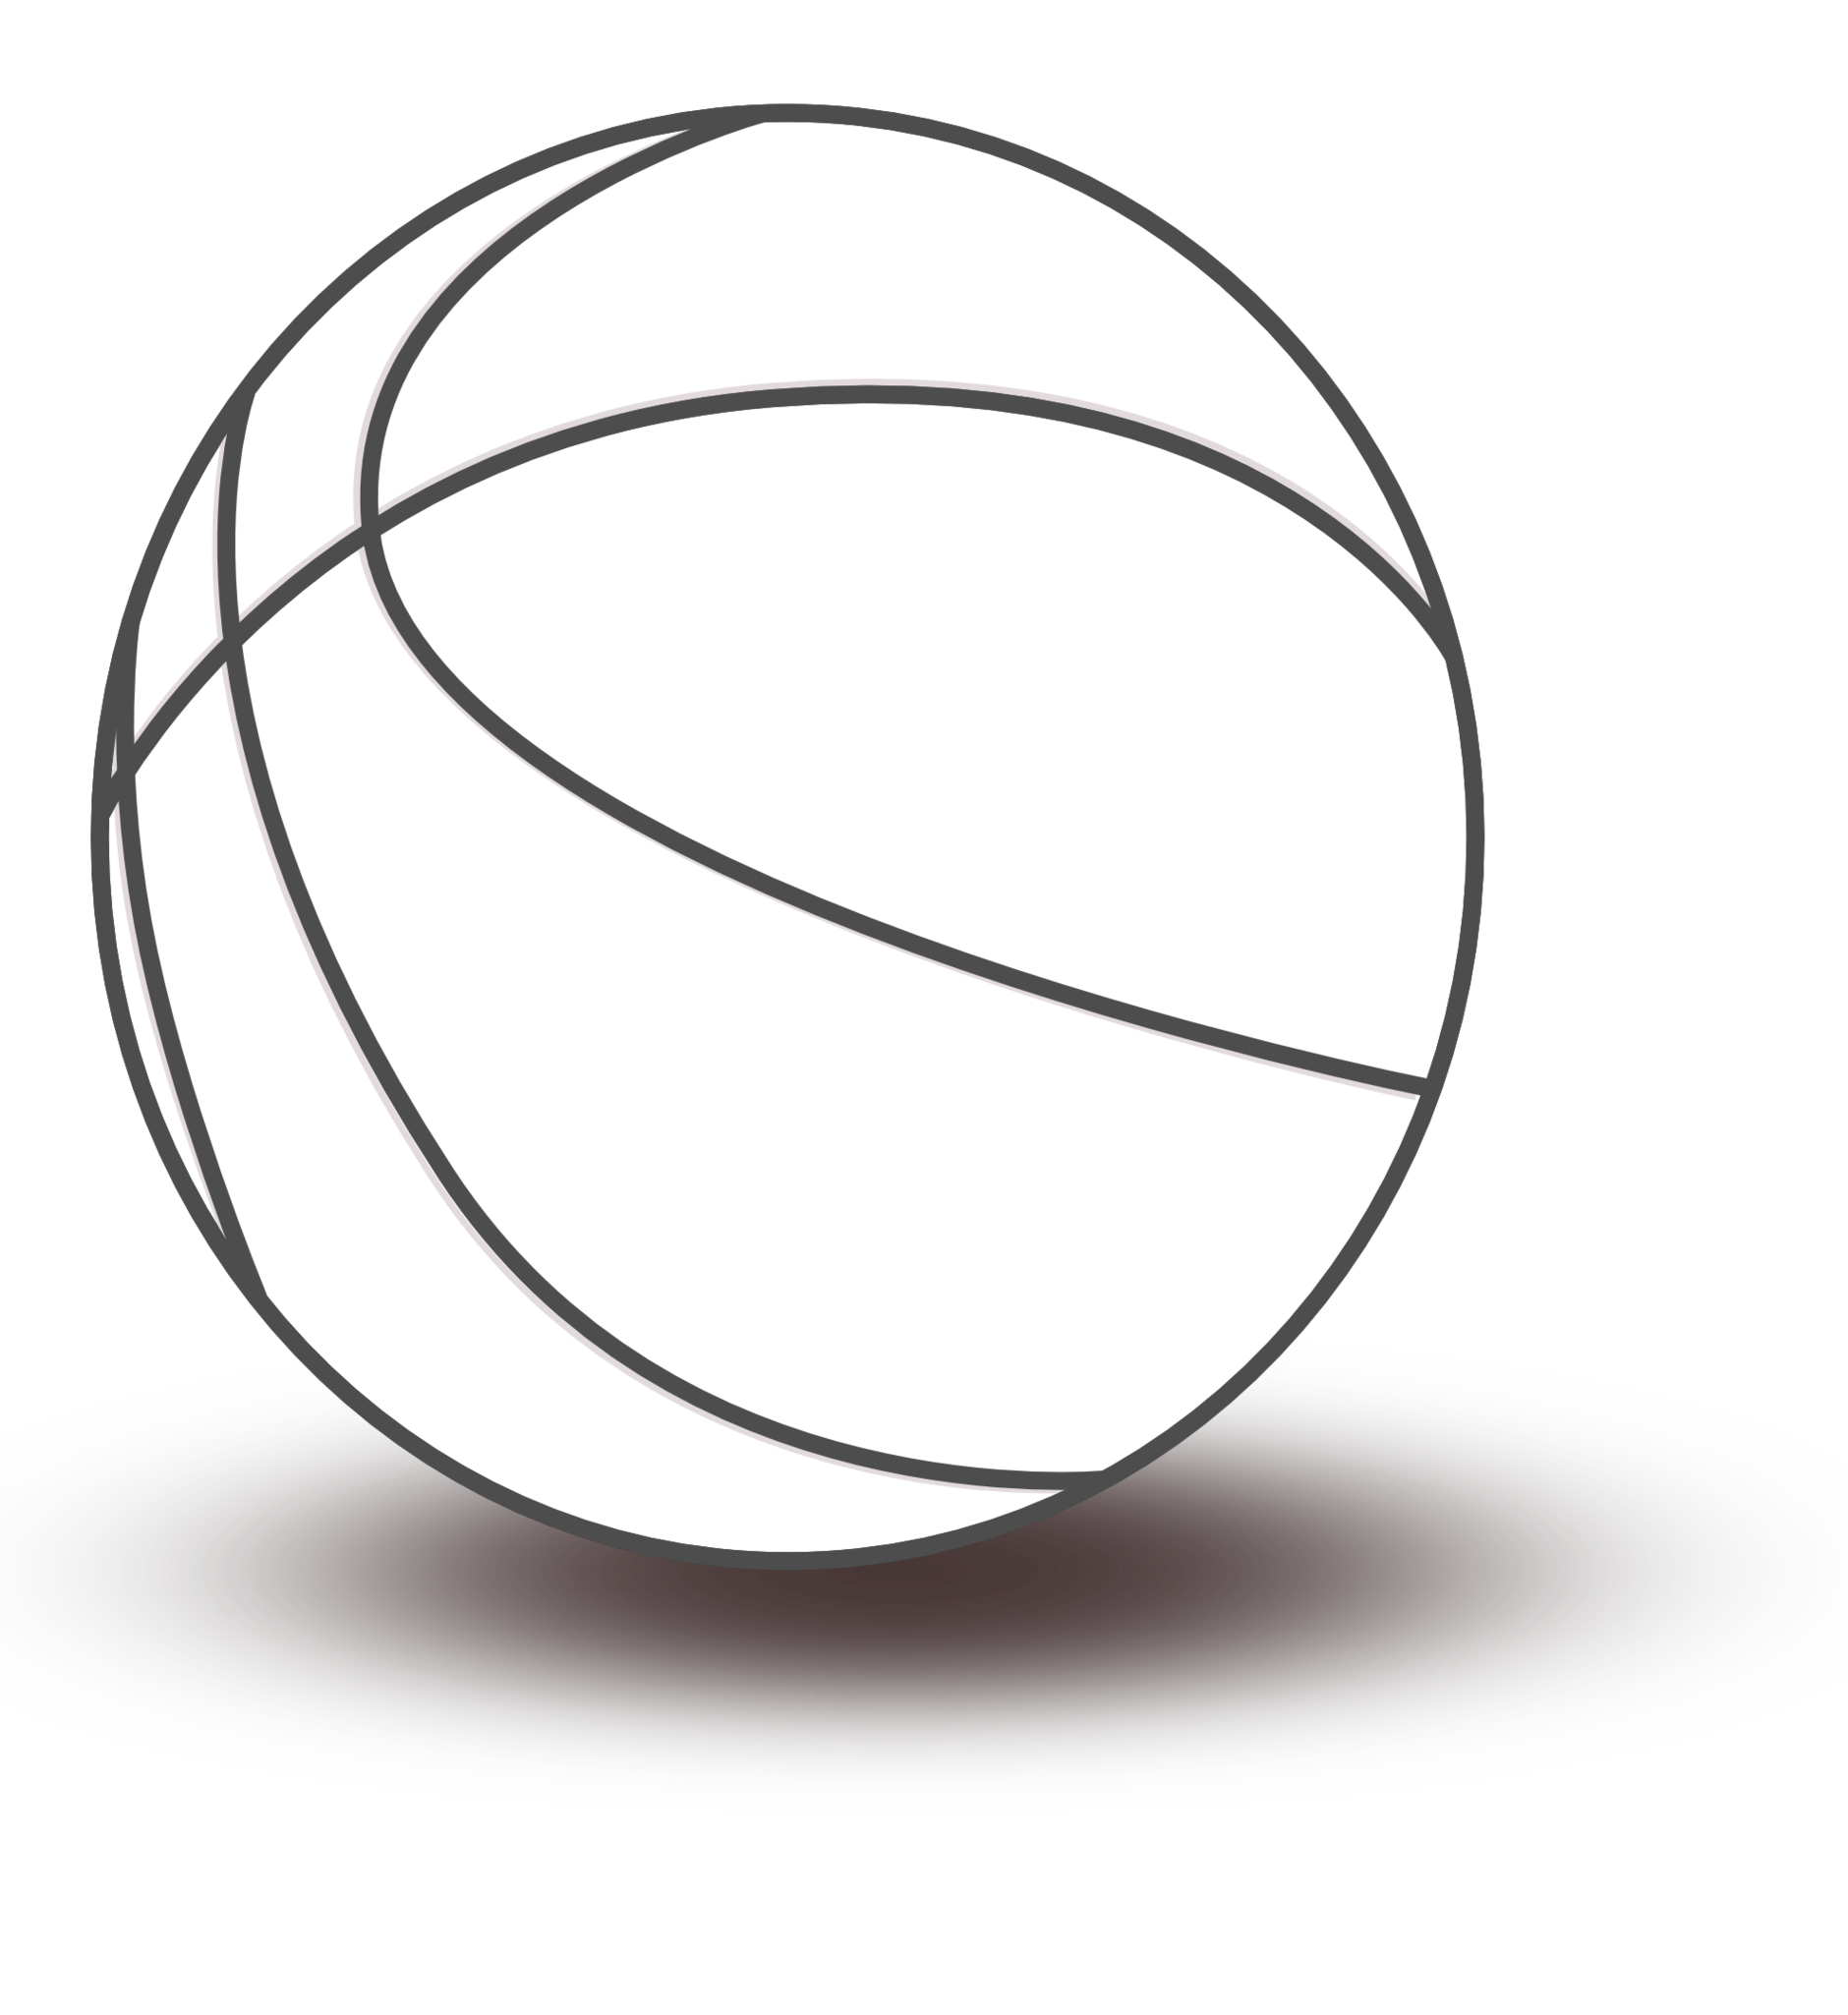 Outline of basketball clipart freeuse library 28+ Collection of Basketball Clipart Black And White Png | High ... freeuse library